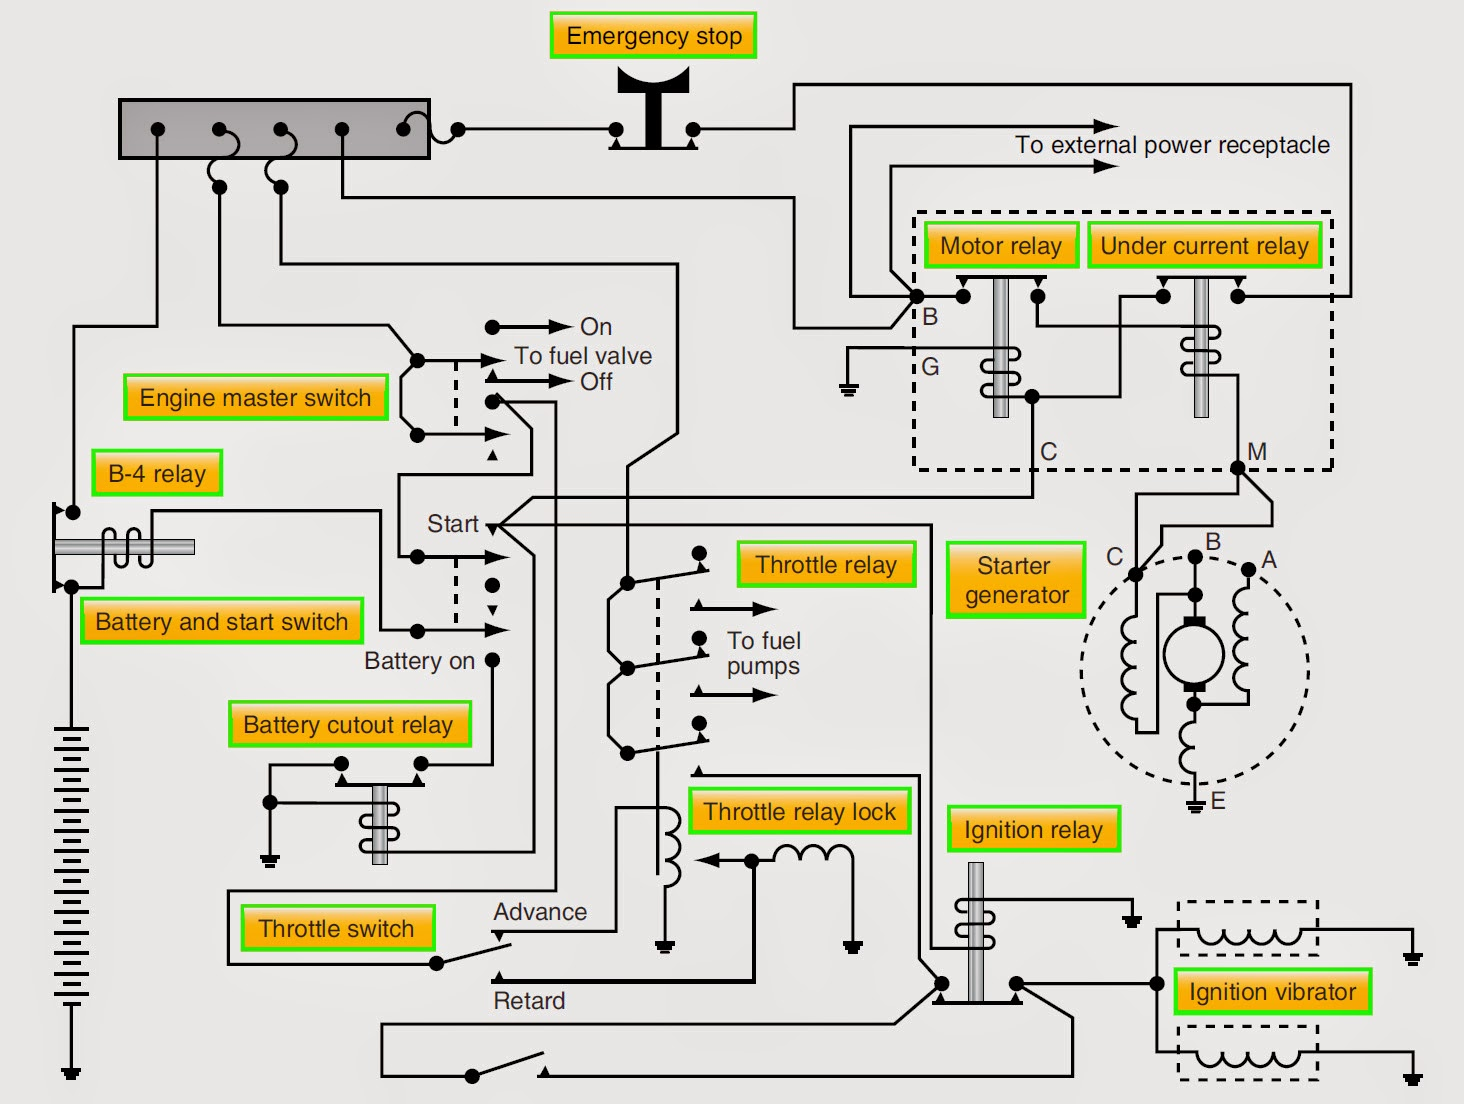 starter generator schematic wiring diagram origin diesel generator wiring diagram aircraft systems electric starting systems and [ 1464 x 1104 Pixel ]